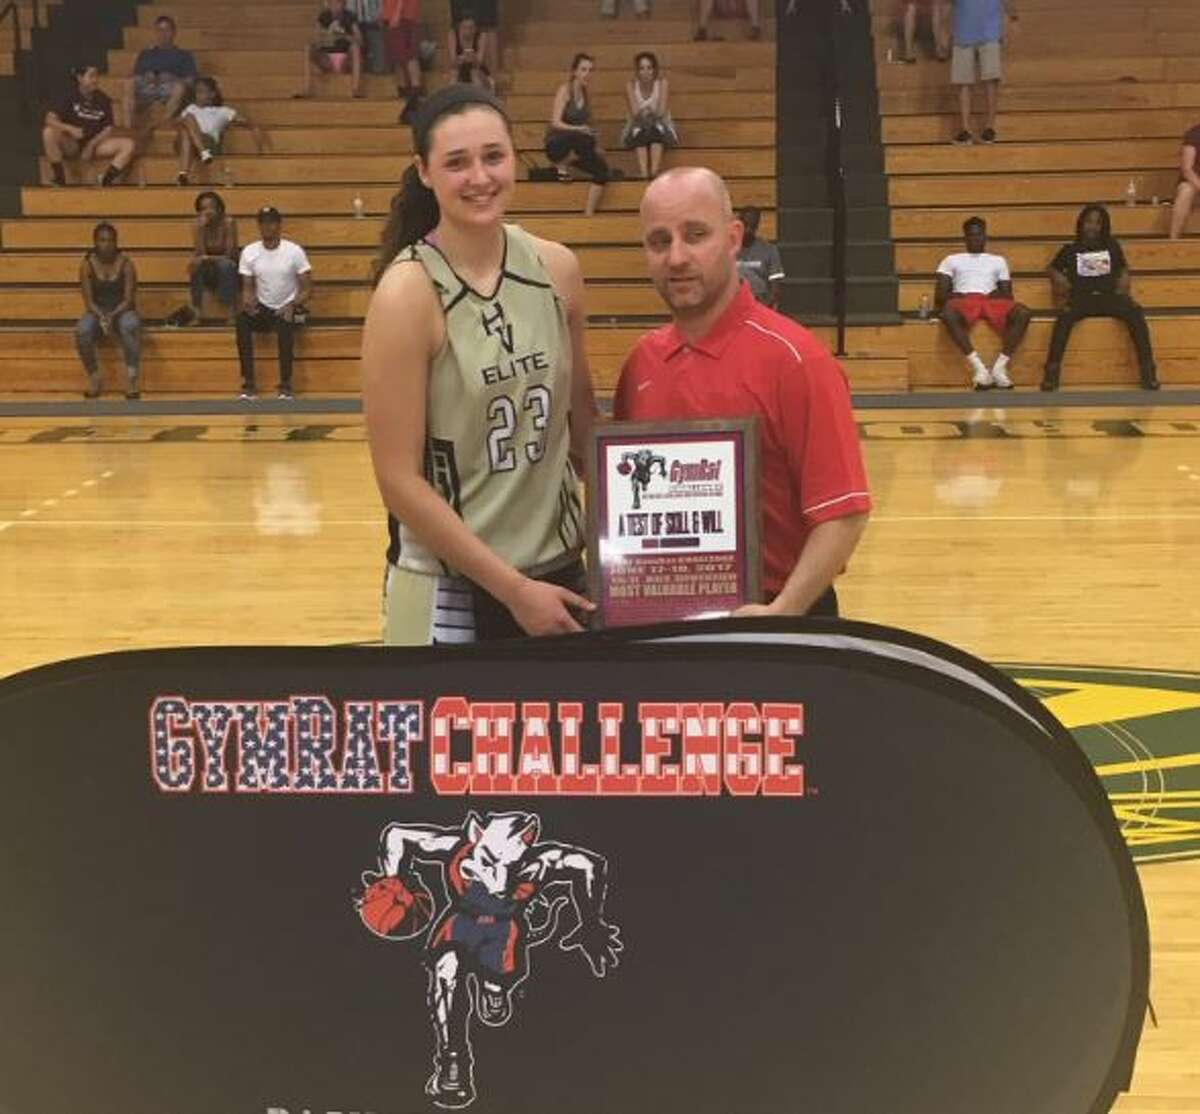 John Kmack, right with Alexa Kellner, a high school basketball star from Stamford, Conn. during the GymRat Challenge in June. Kellner, a senior, has committed to playing at the University of Massachusetts.